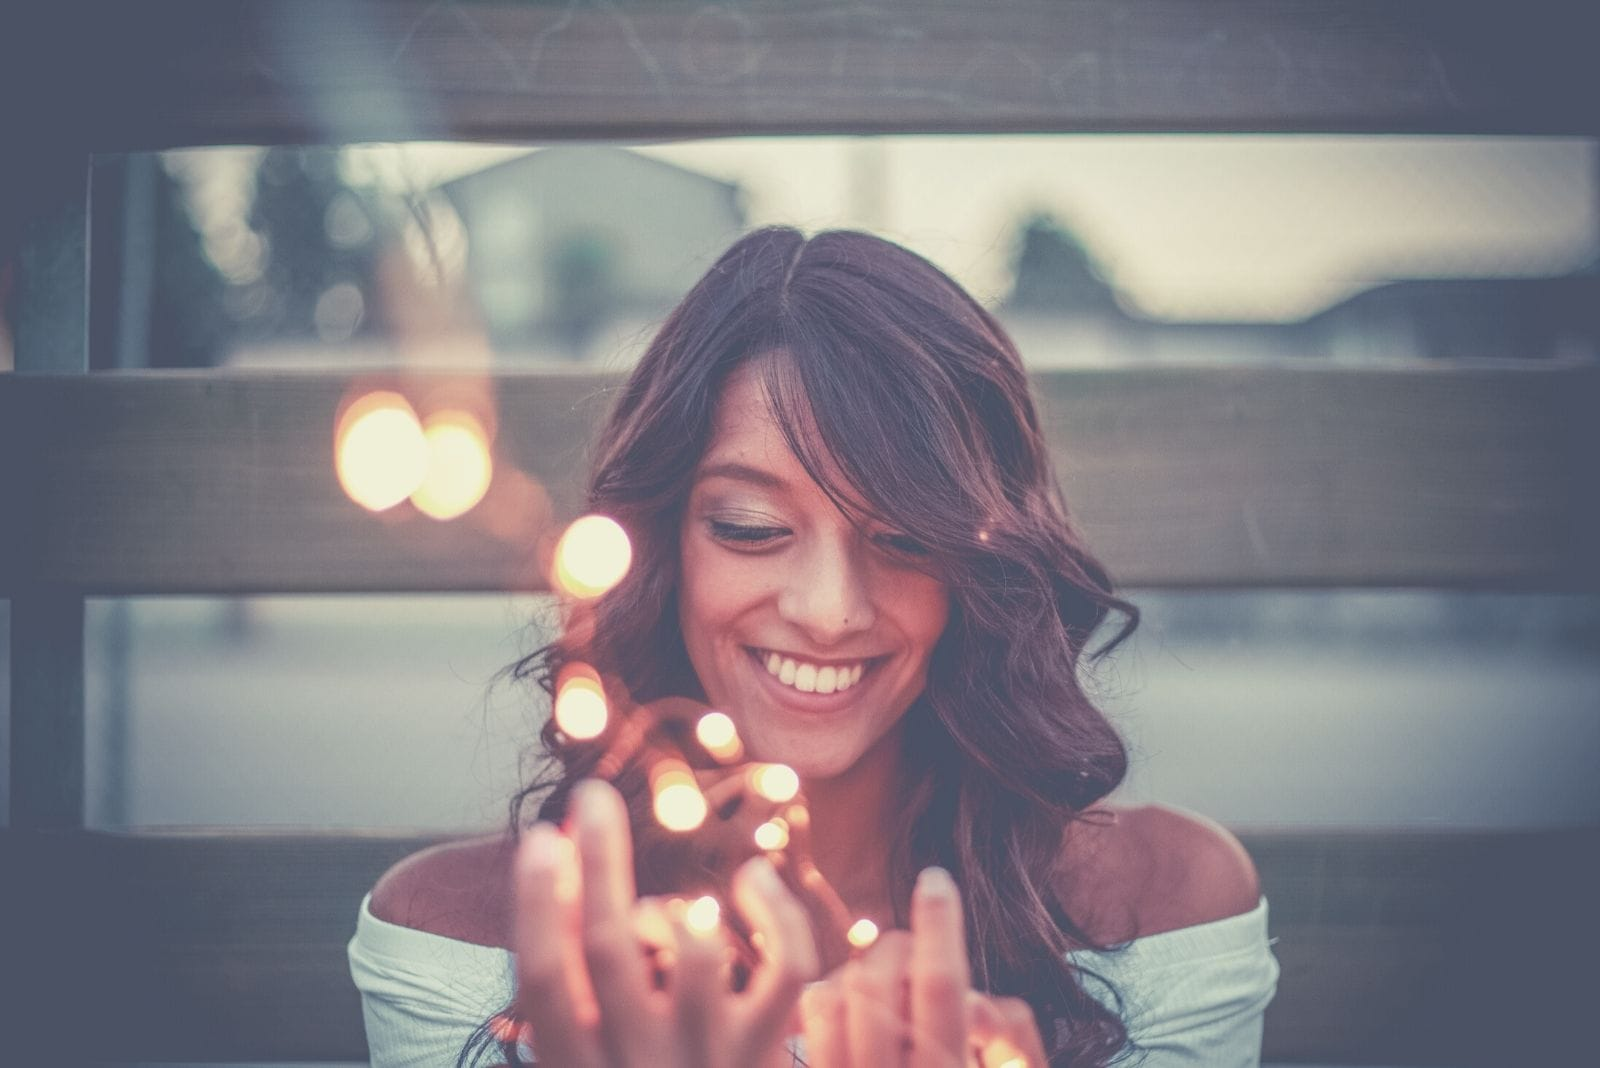 woman holding lights smiling and sitting outdoors